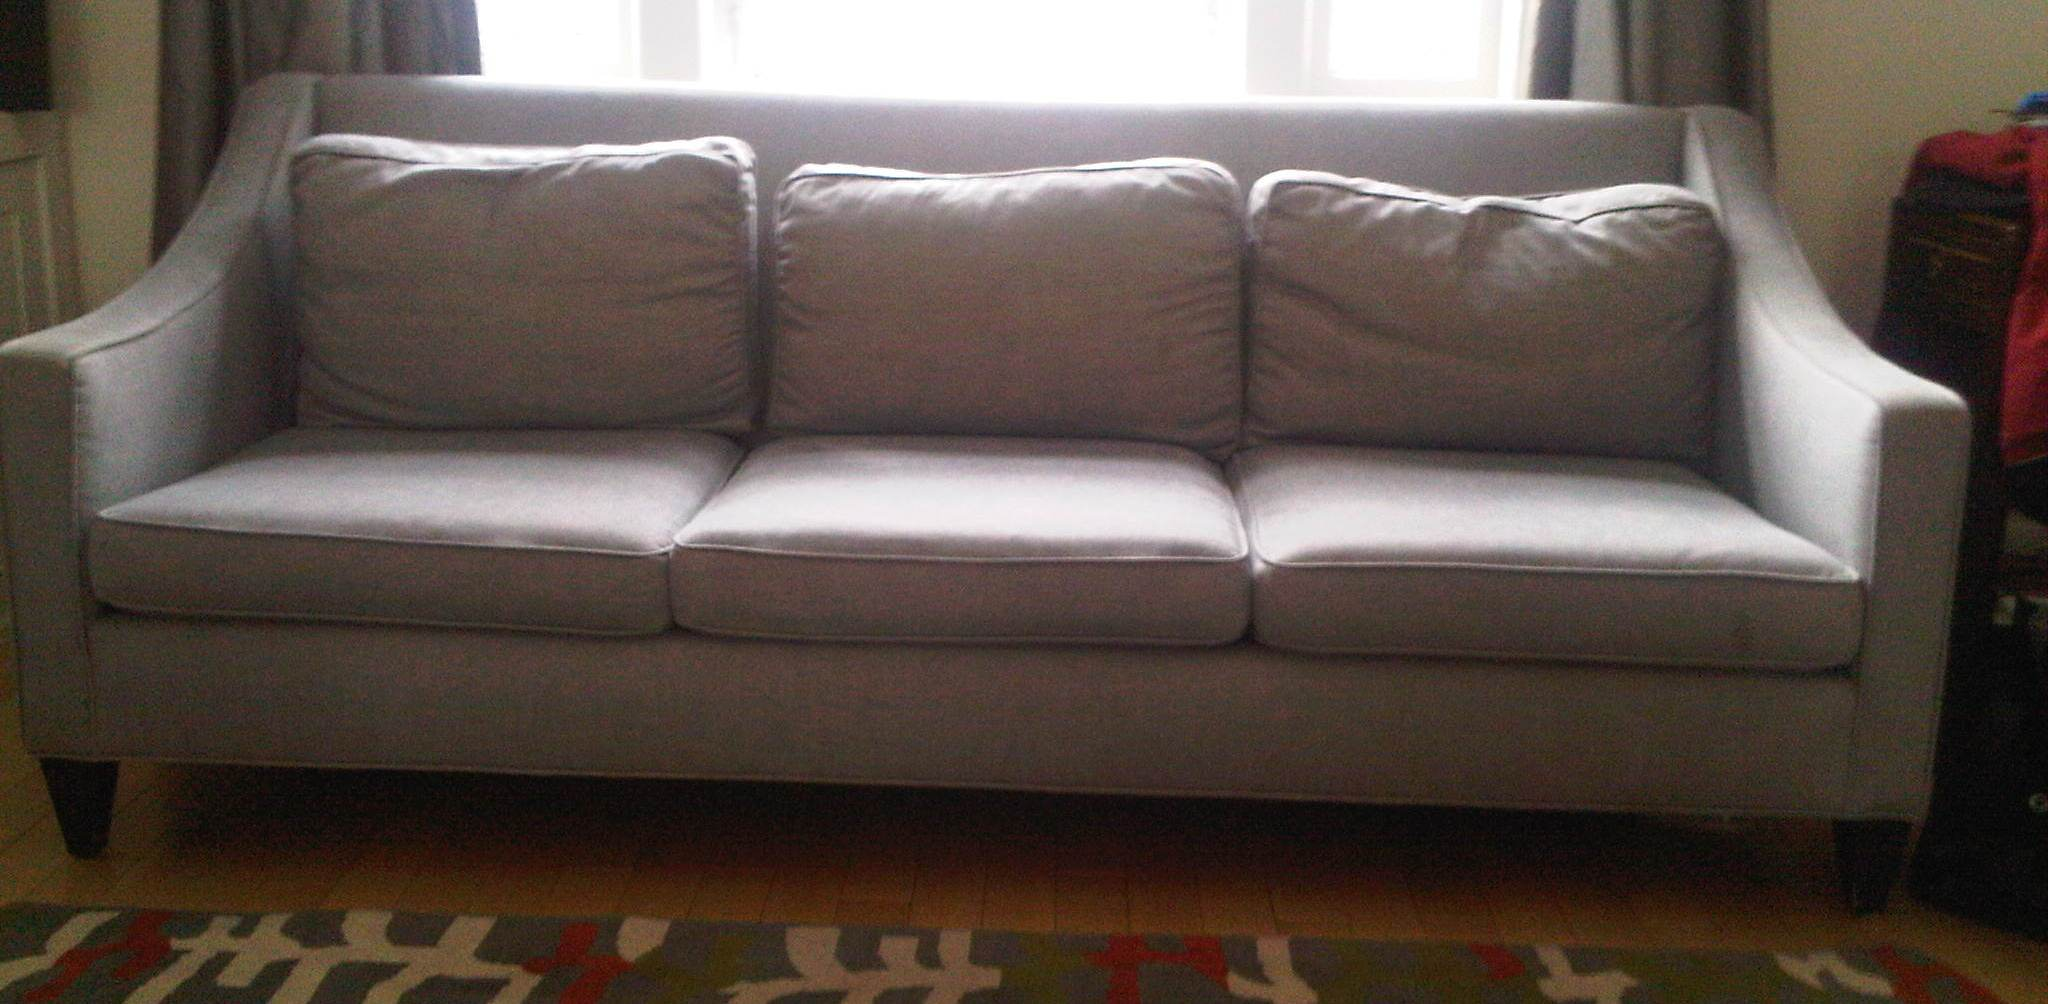 Jags furniture reupholstery sofa reupholstery samples Reupholster loveseat